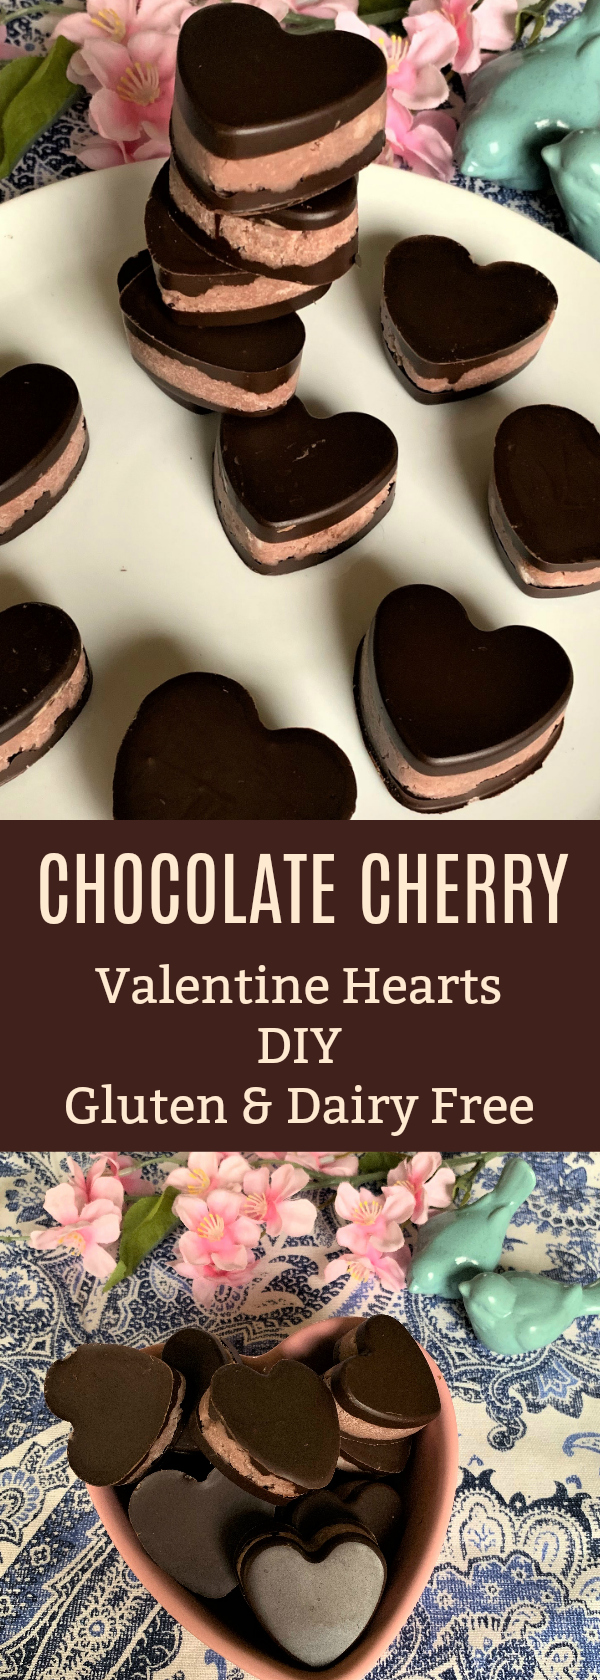 diy chocolate cherry valentine hearts. these easy candies are great for gift giving and are dairy and gluten free!